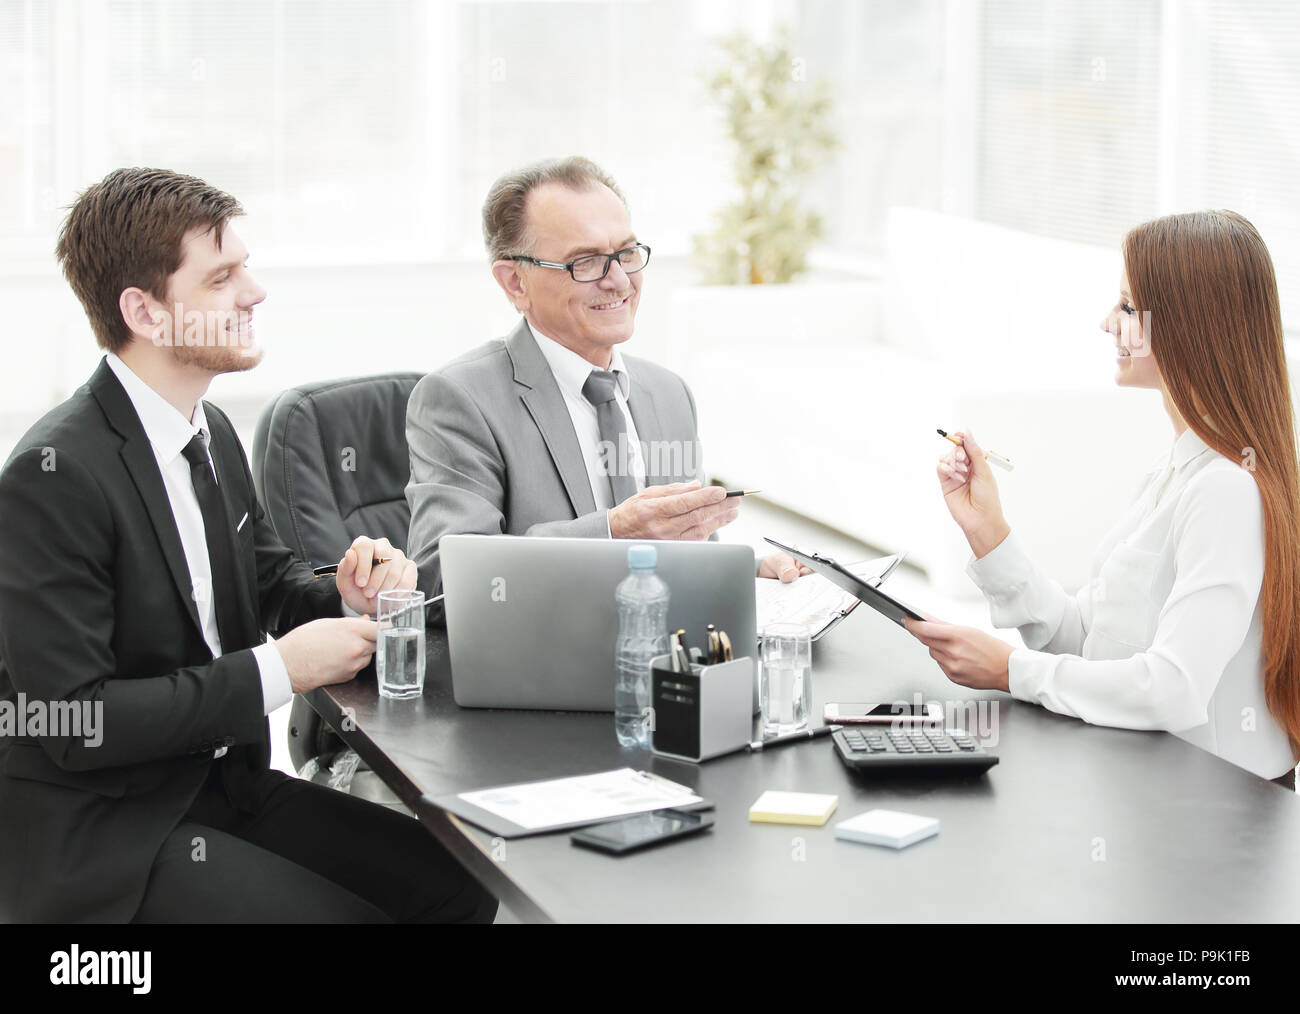 Manager discussing work issues with his assistants behind a Desk - Stock Image